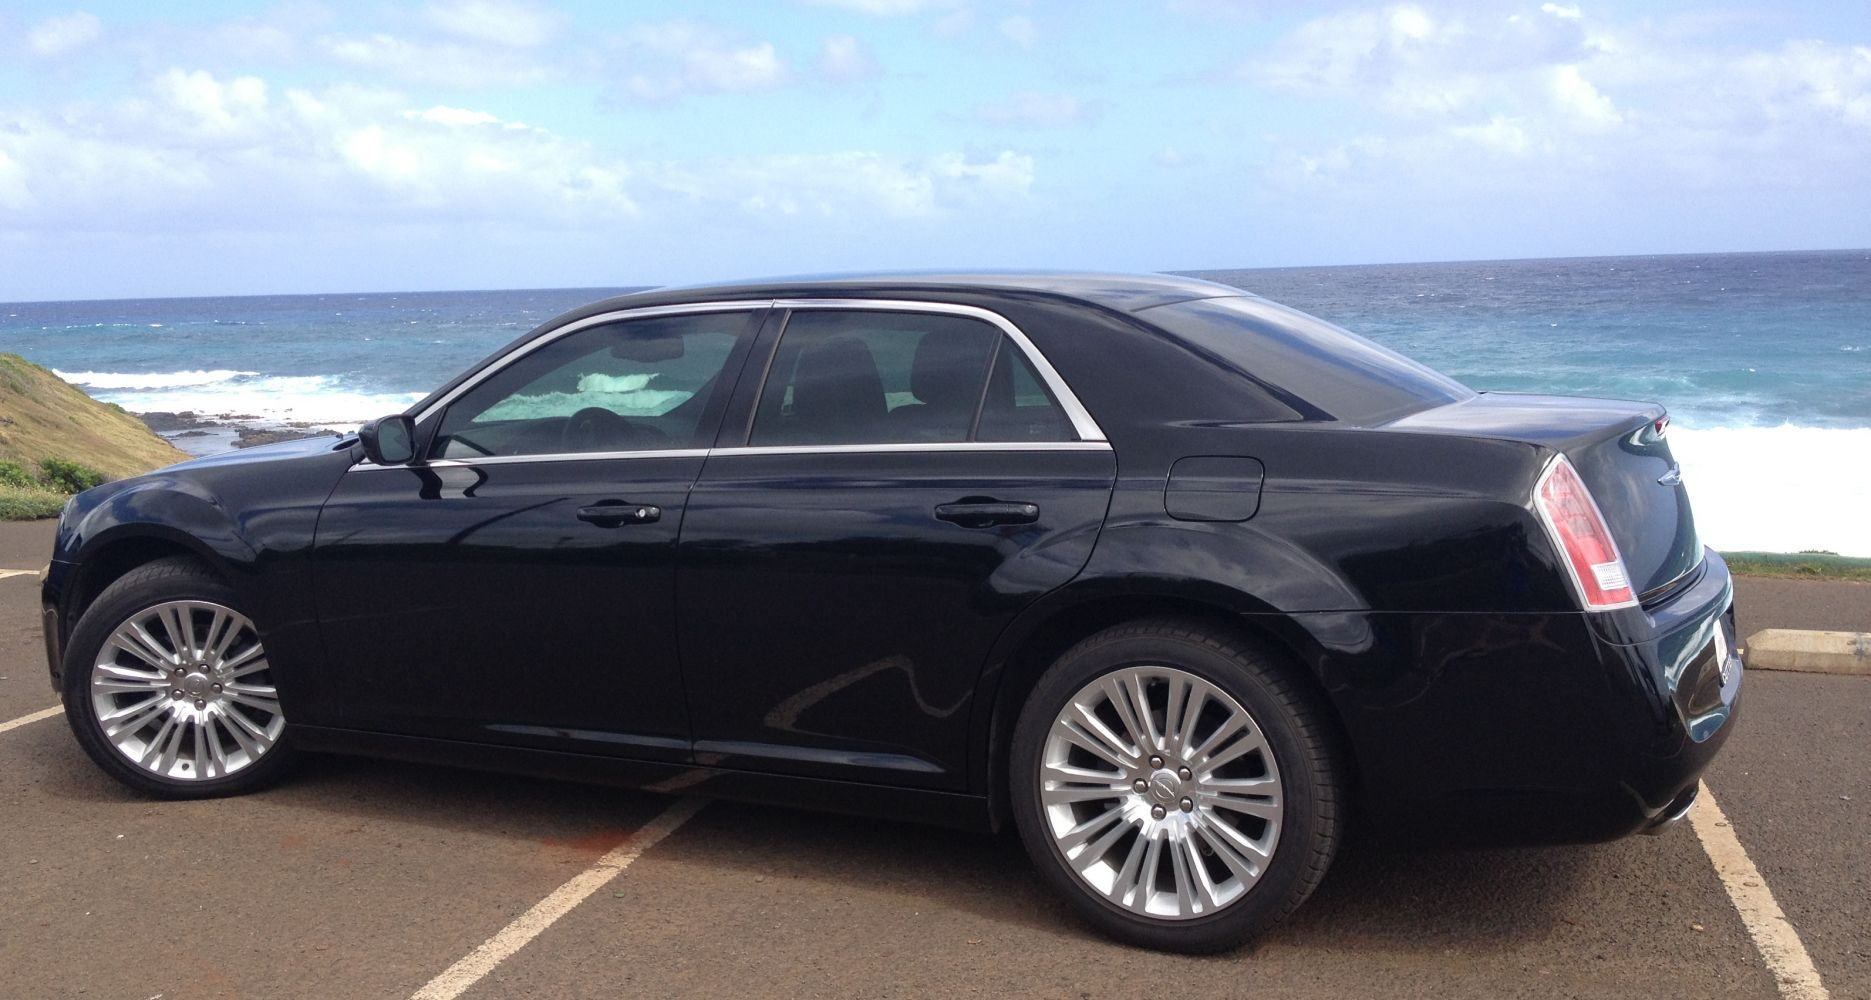 Premium luxury car service in Kauai's  Hi